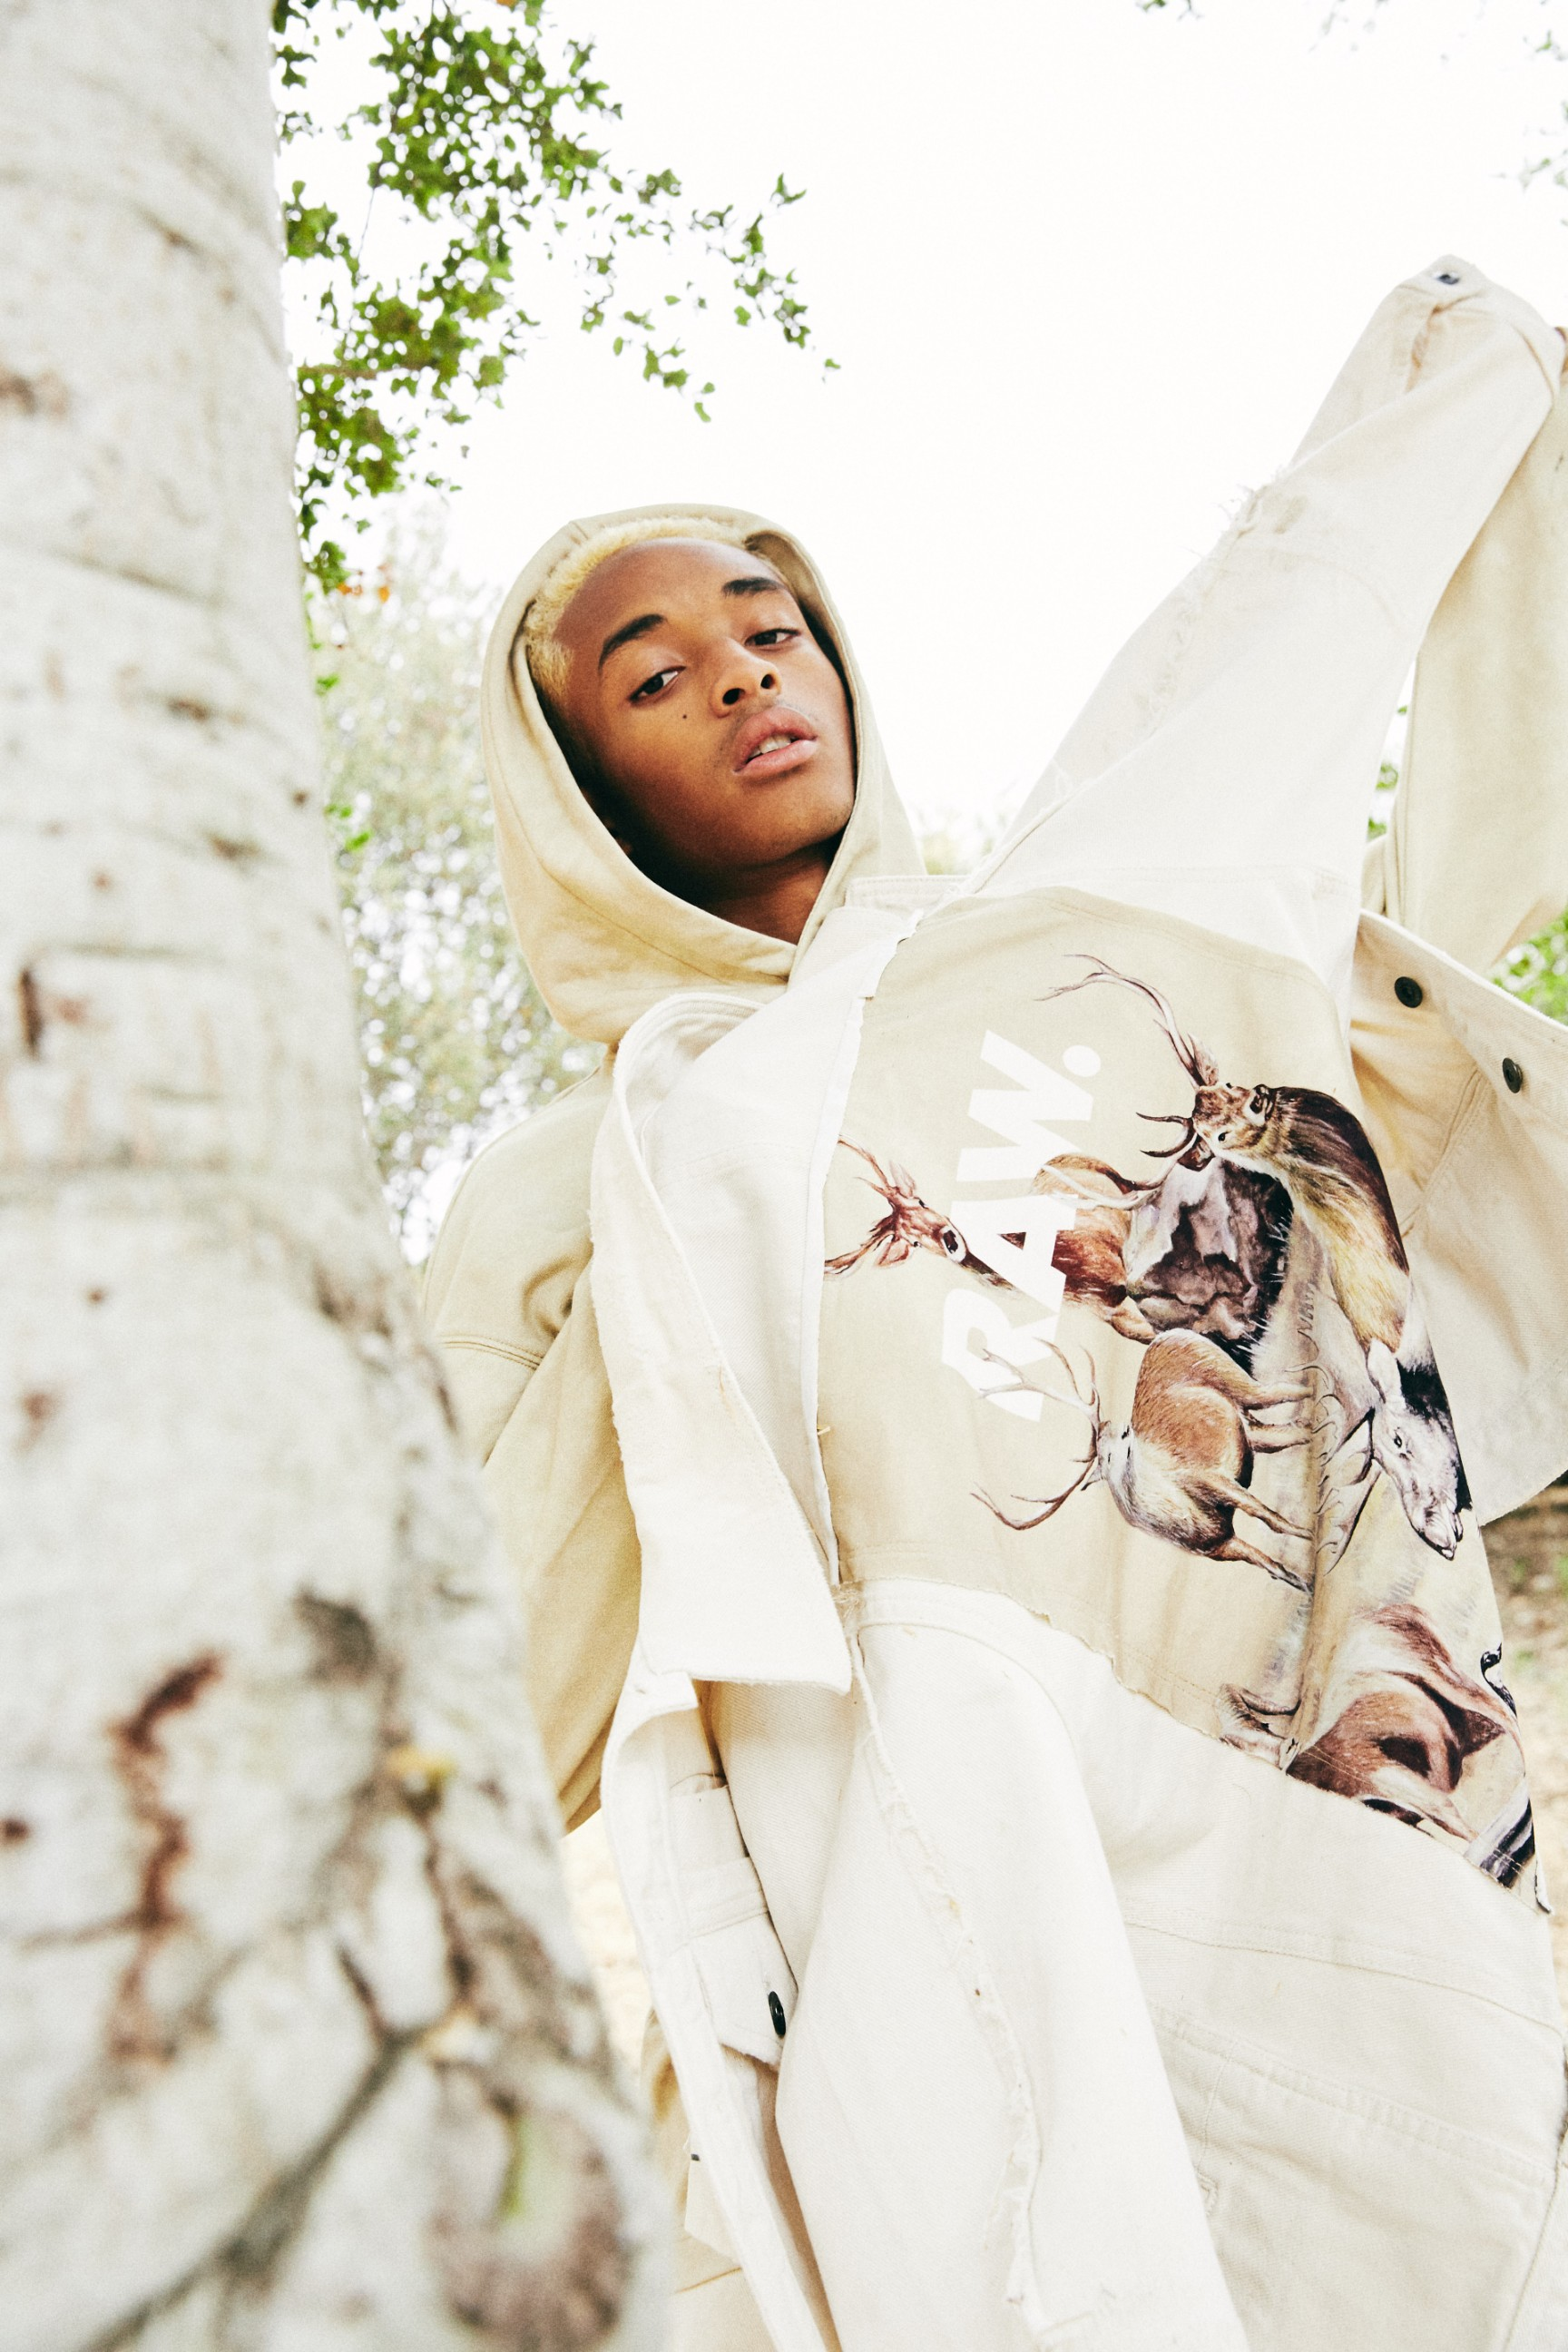 G-Star RAW and Jaden Smith Unveil their Collaborative 'Forces of Nature' Collection